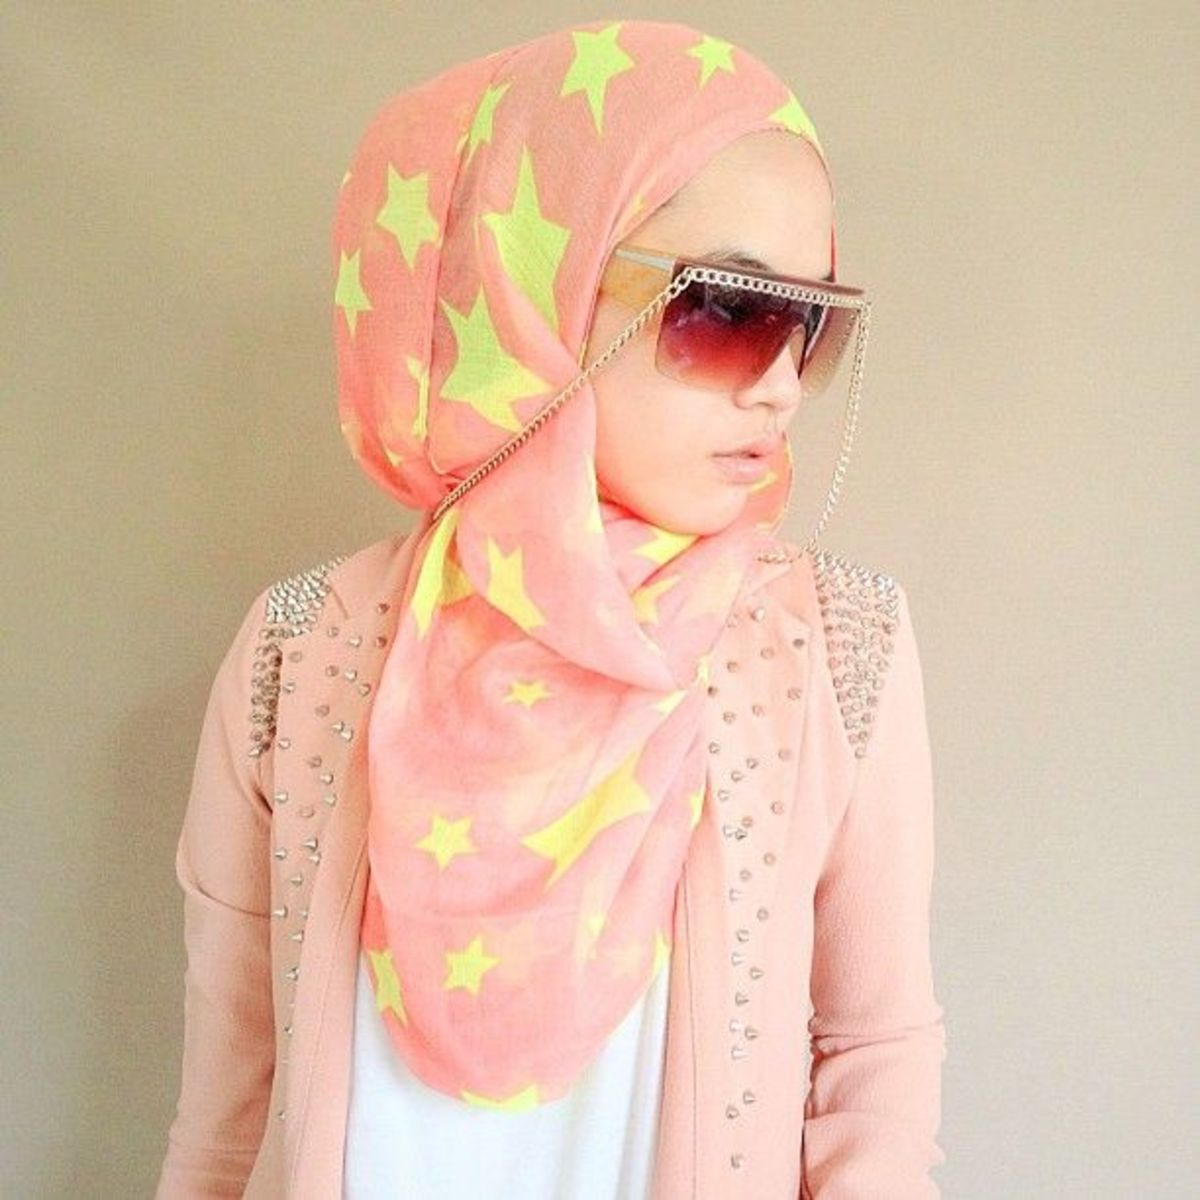 Trendy hijab look yet properly maintaining her modety.